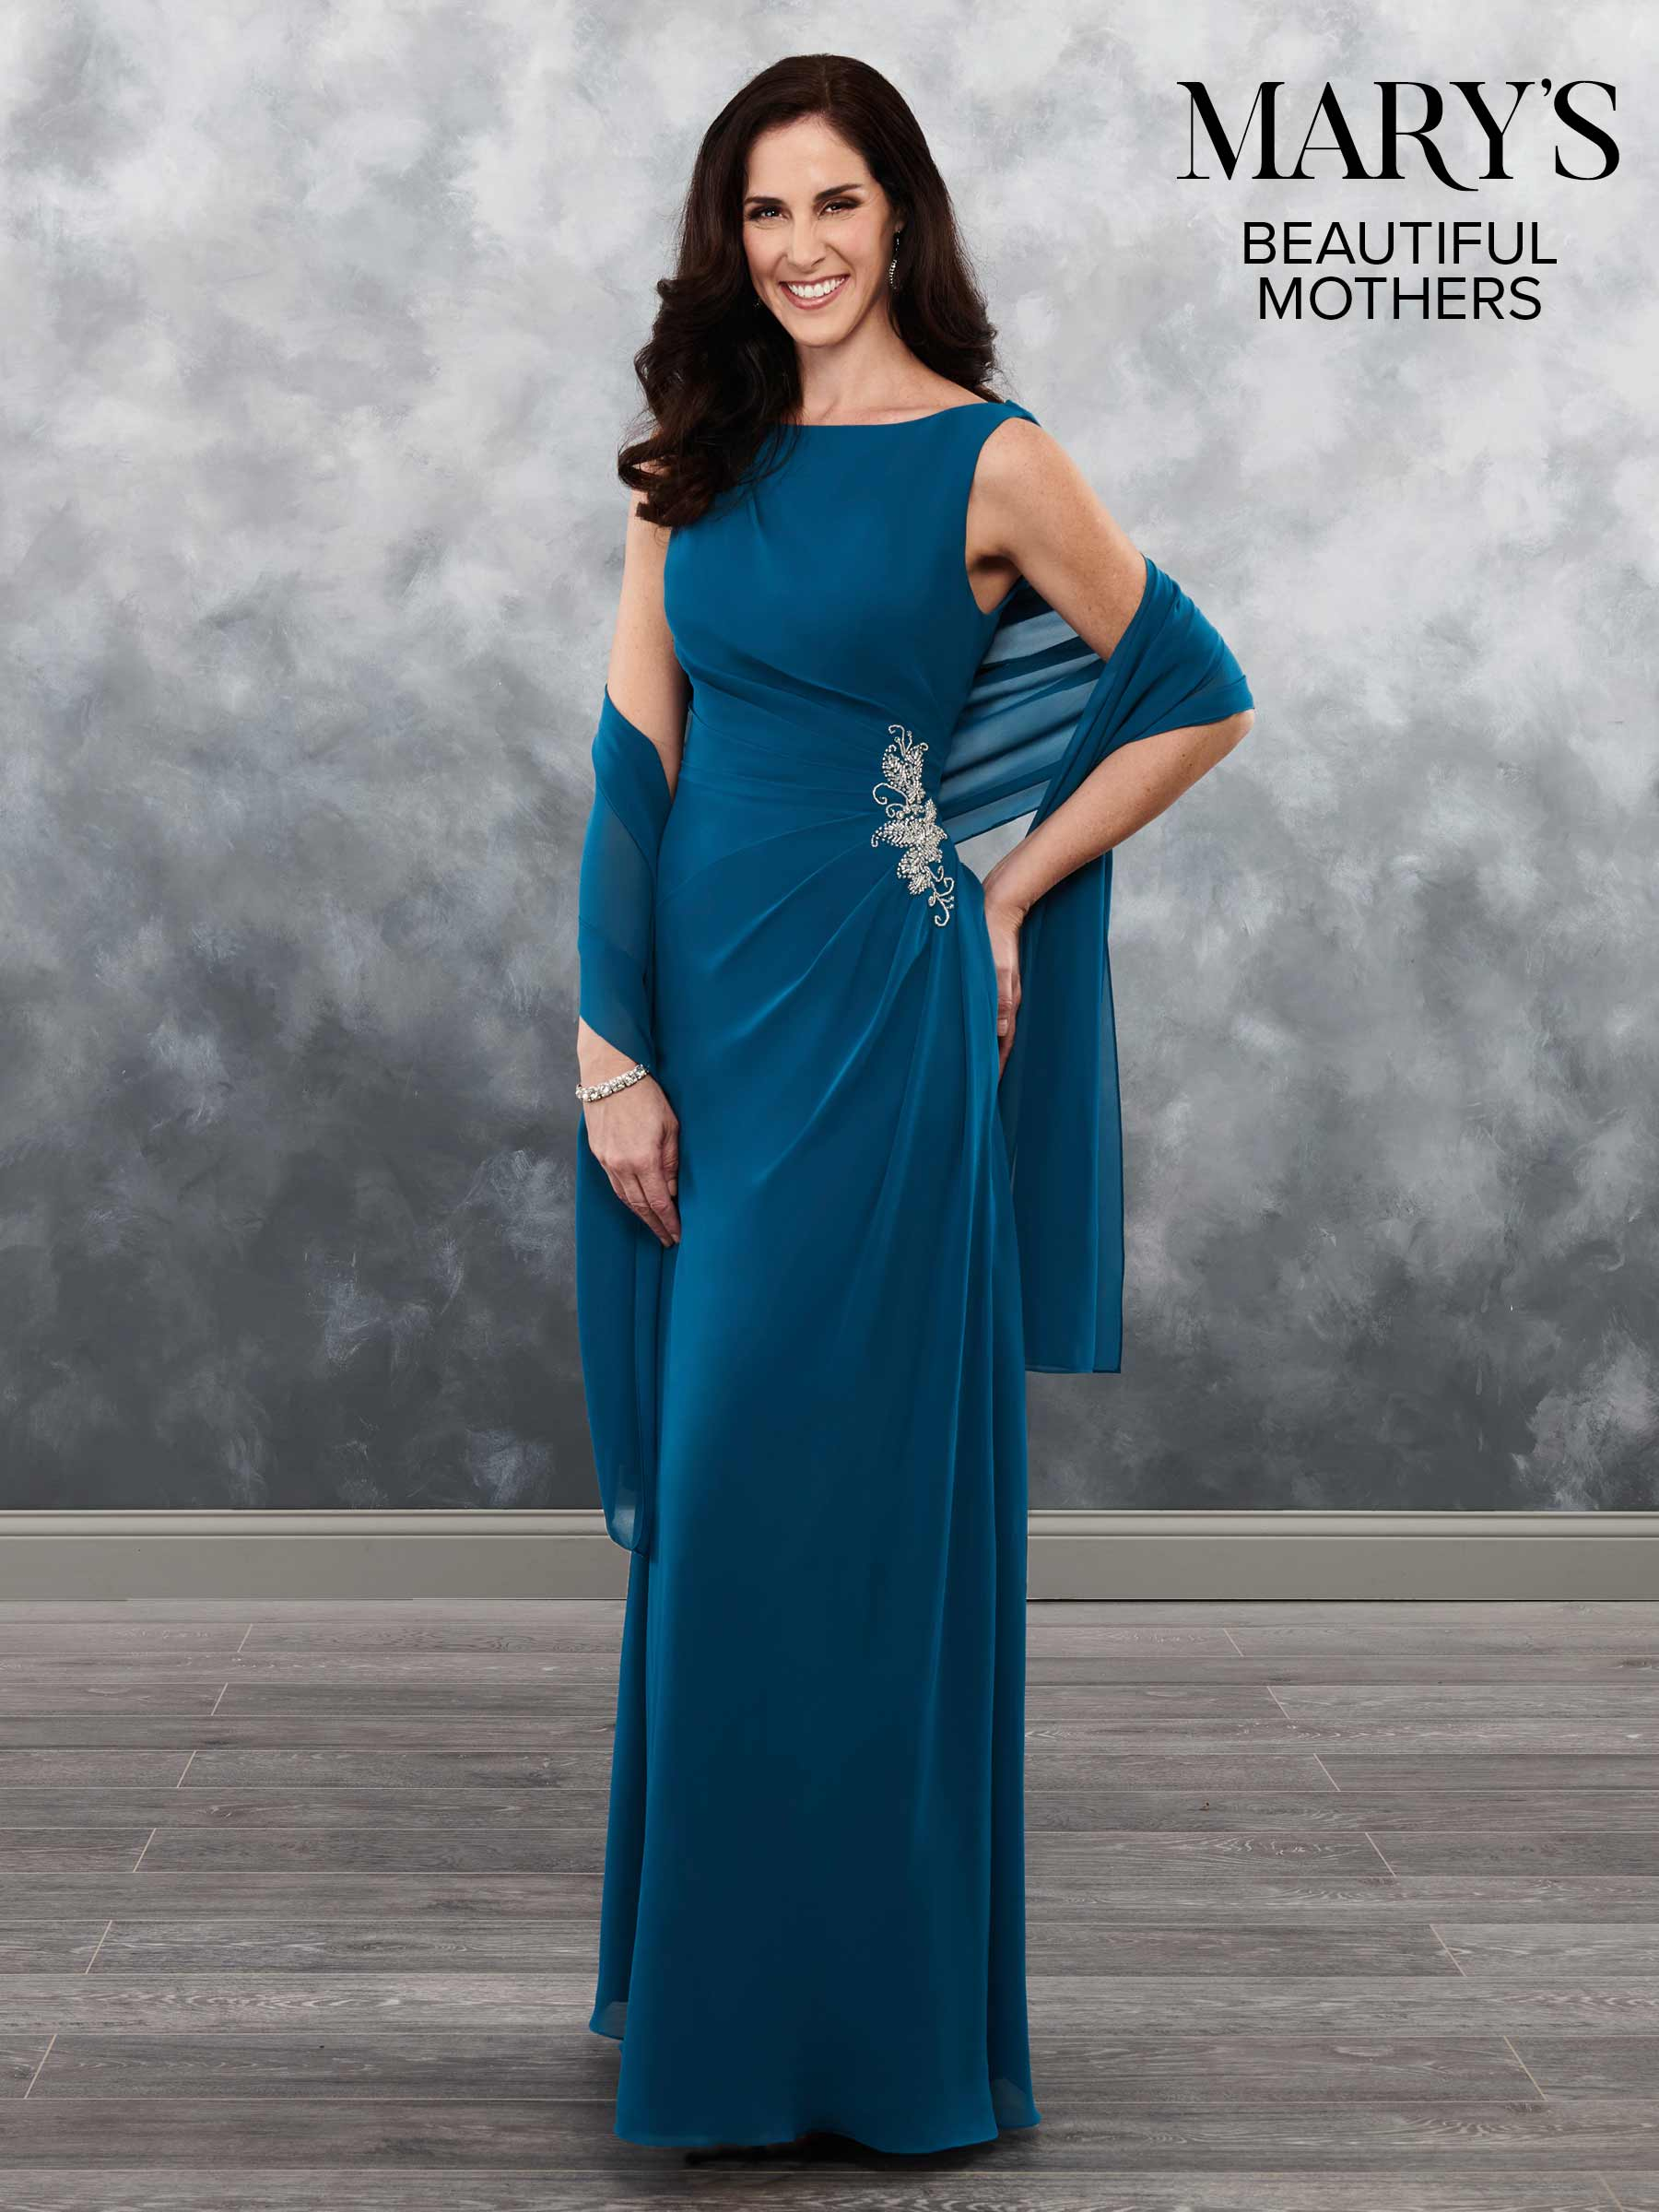 Mother Of The Bride Dresses | Beautiful Mothers | Style - MB8029